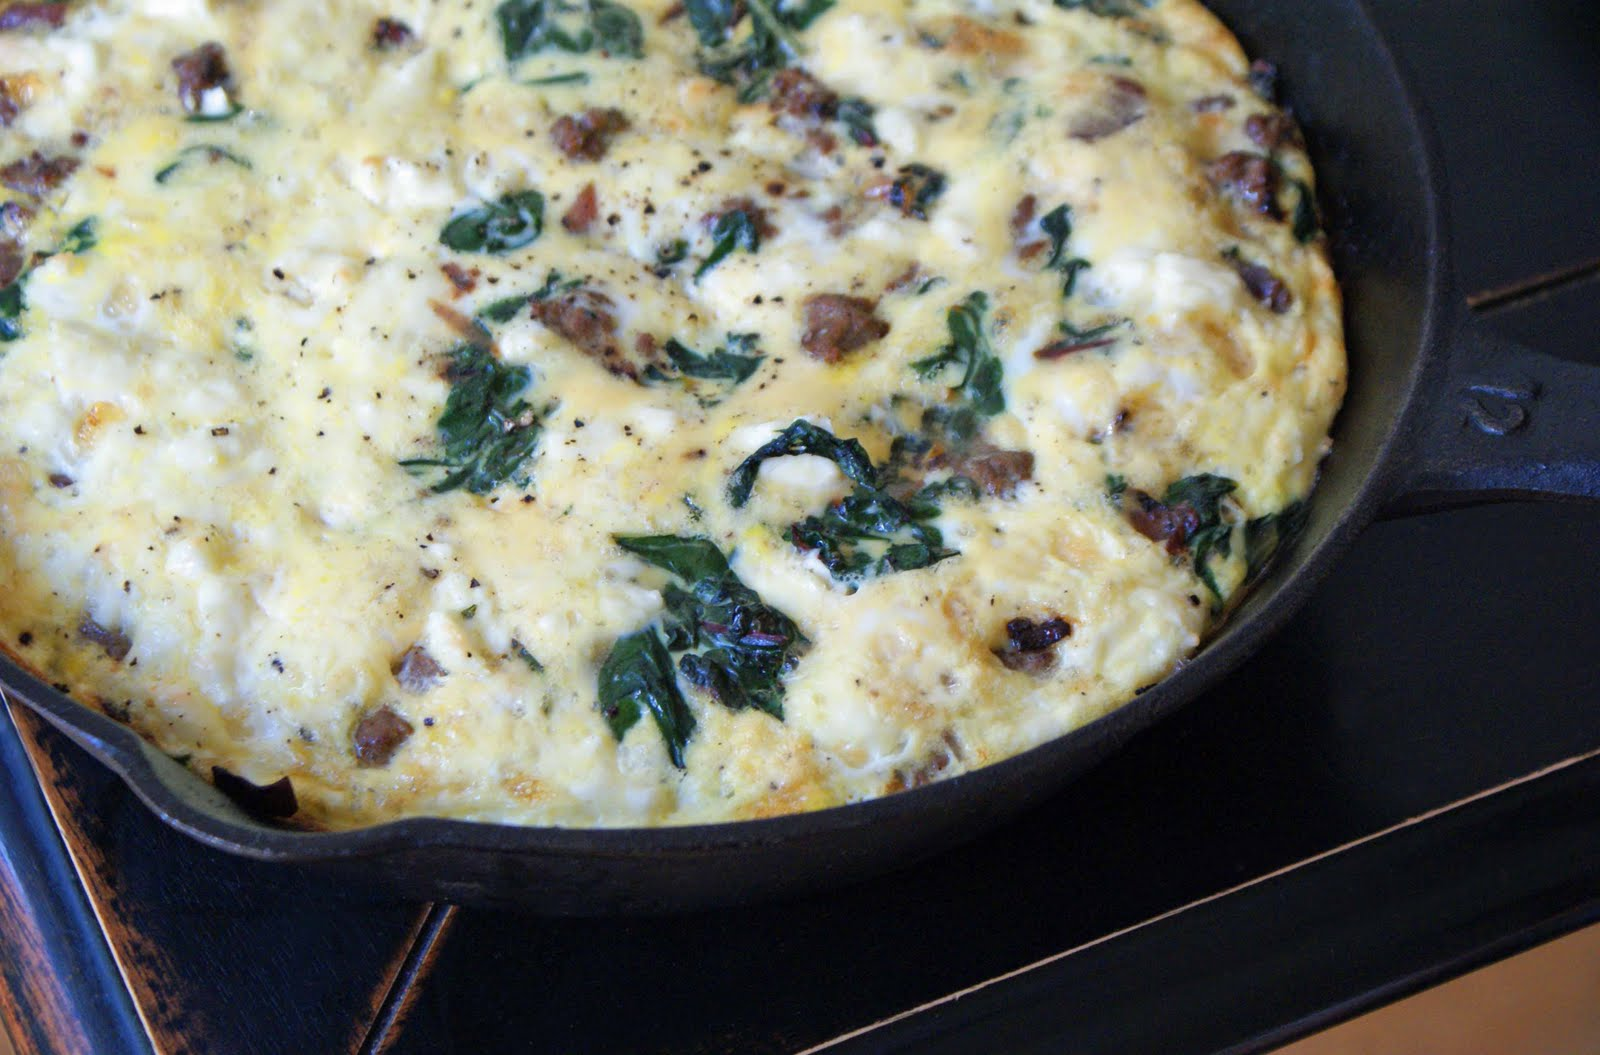 bites with chard swiss chard purses with frittata bites with chard ...